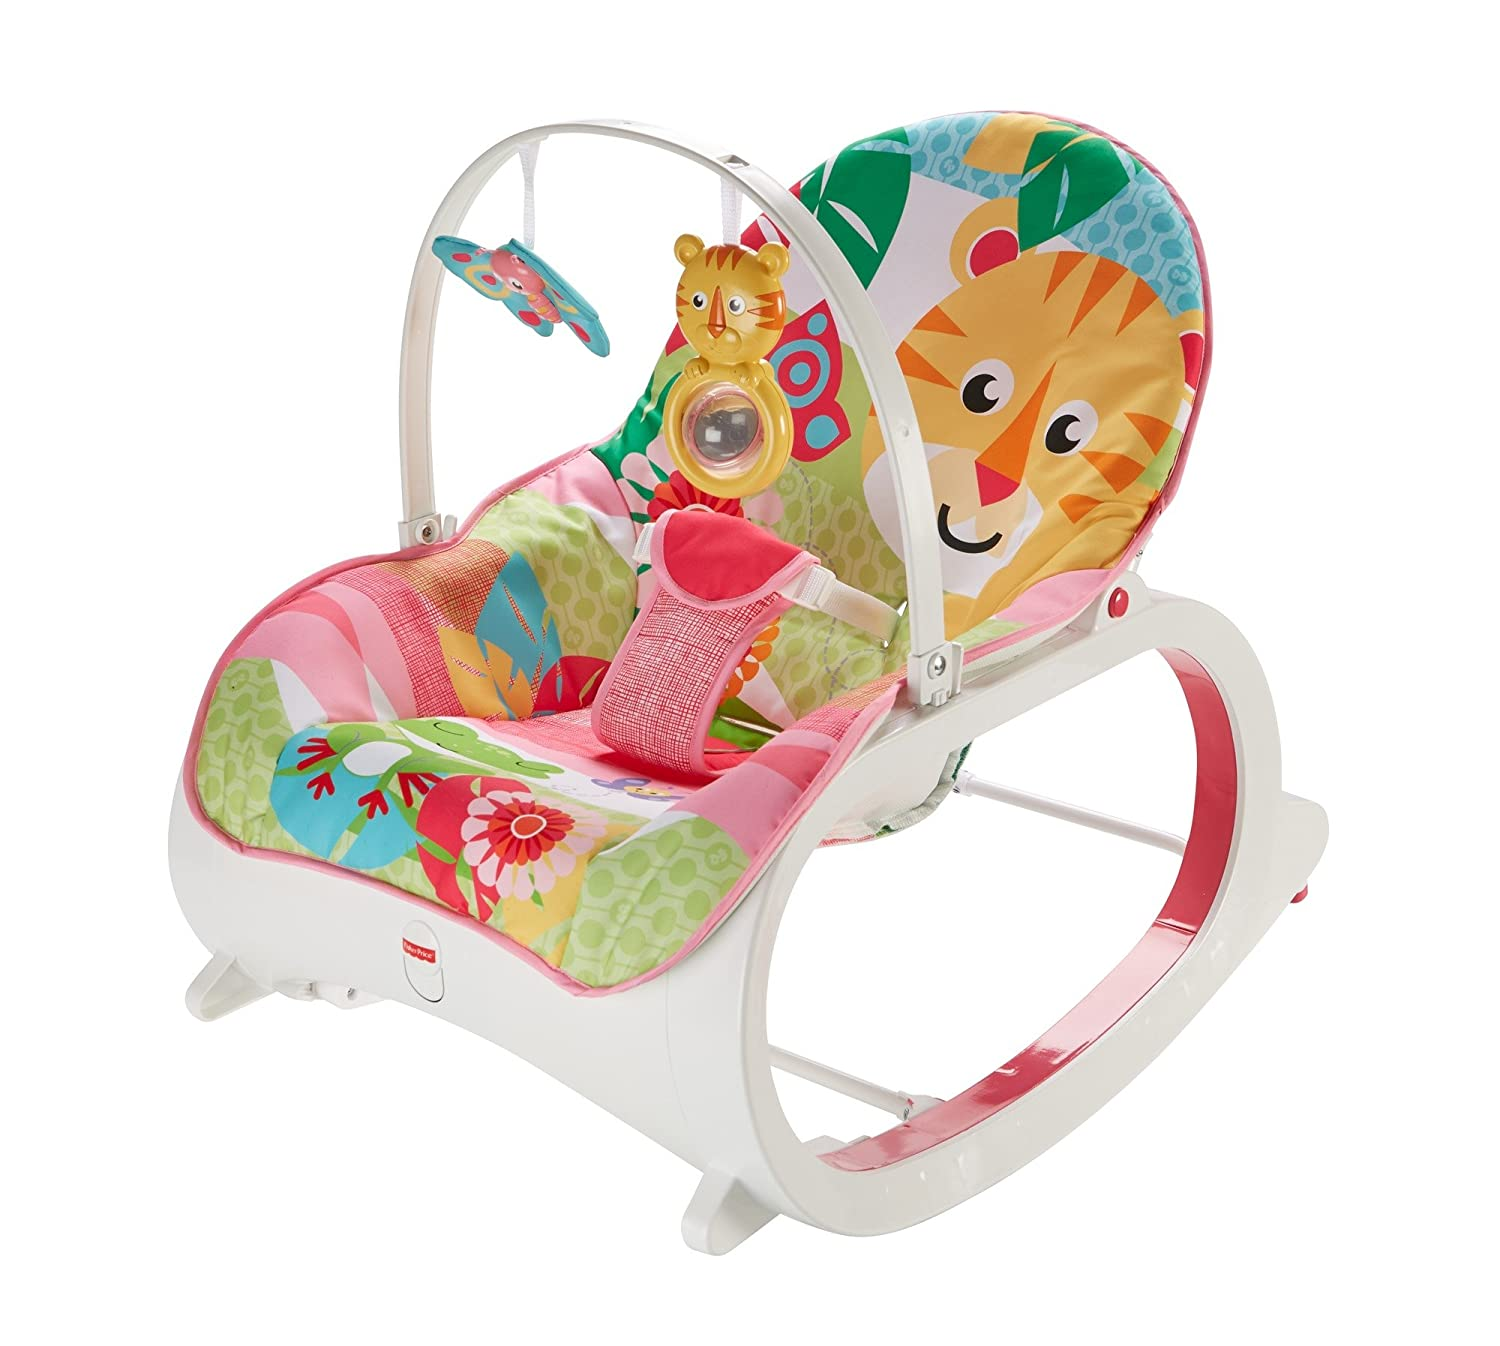 966871eef5f7 Fisher-Price FMN39 Infant-to-Toddler Rocker